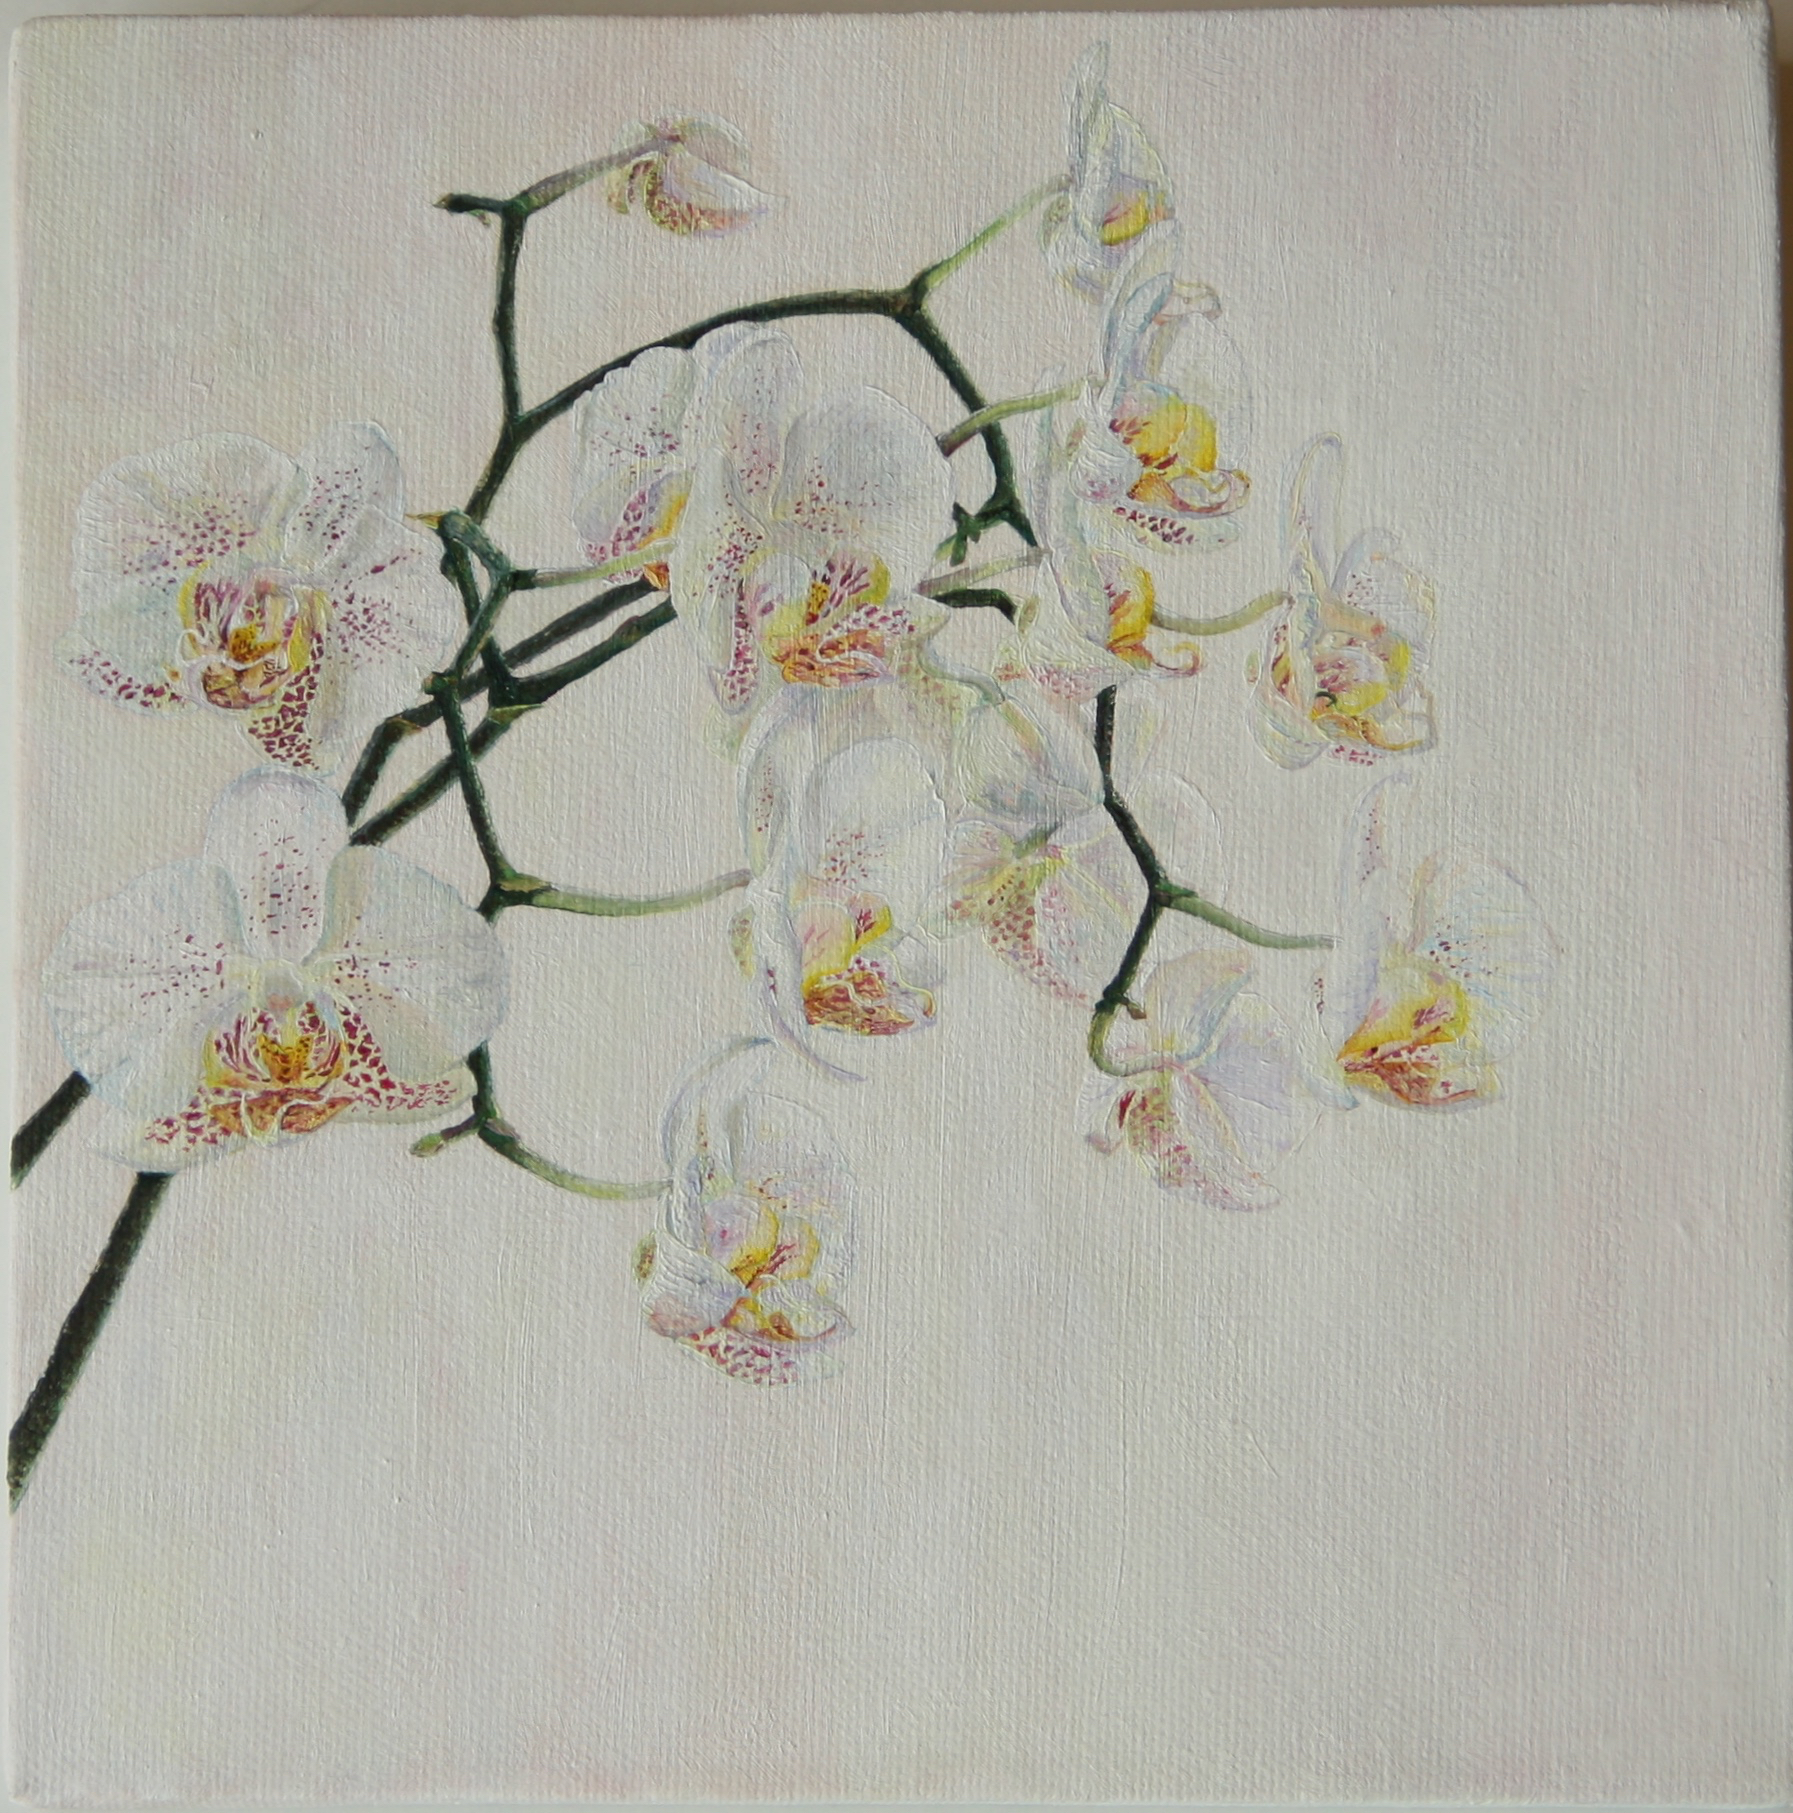 White Orchids - oil painting 20.5 x 20.5 cm